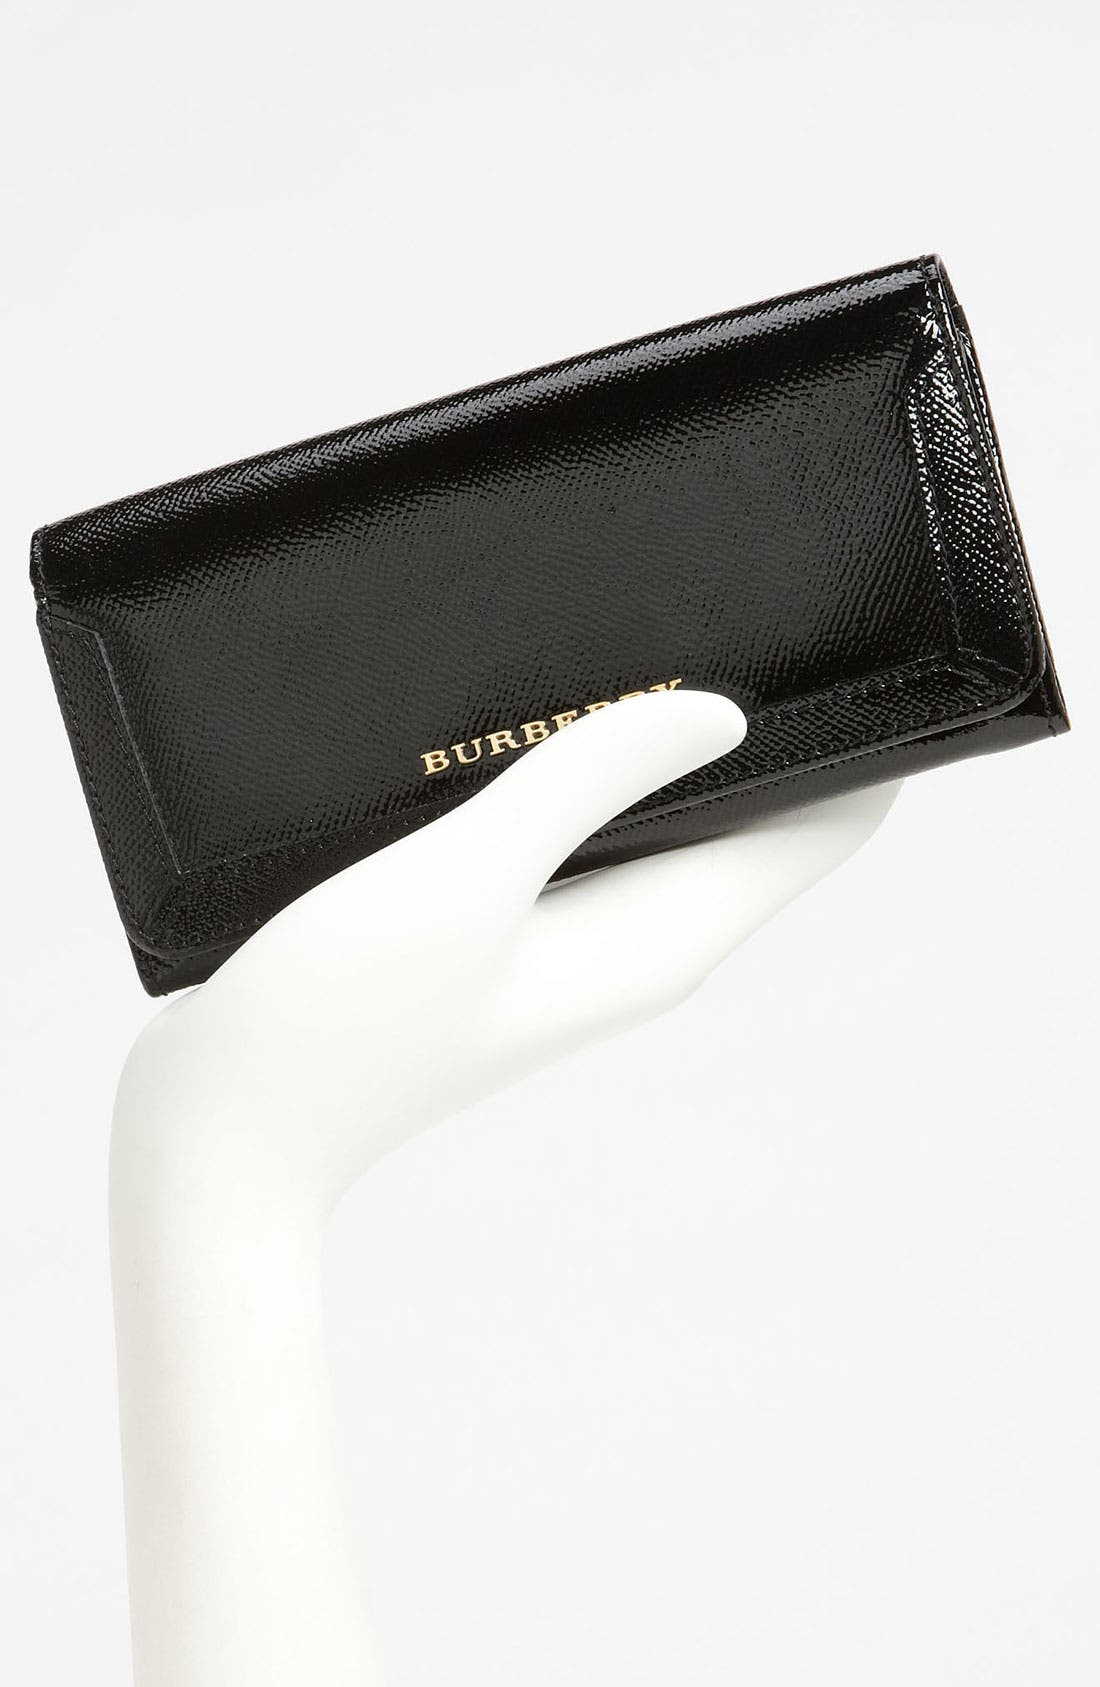 Patent Leather Wallet,                             Alternate thumbnail 4, color,                             001